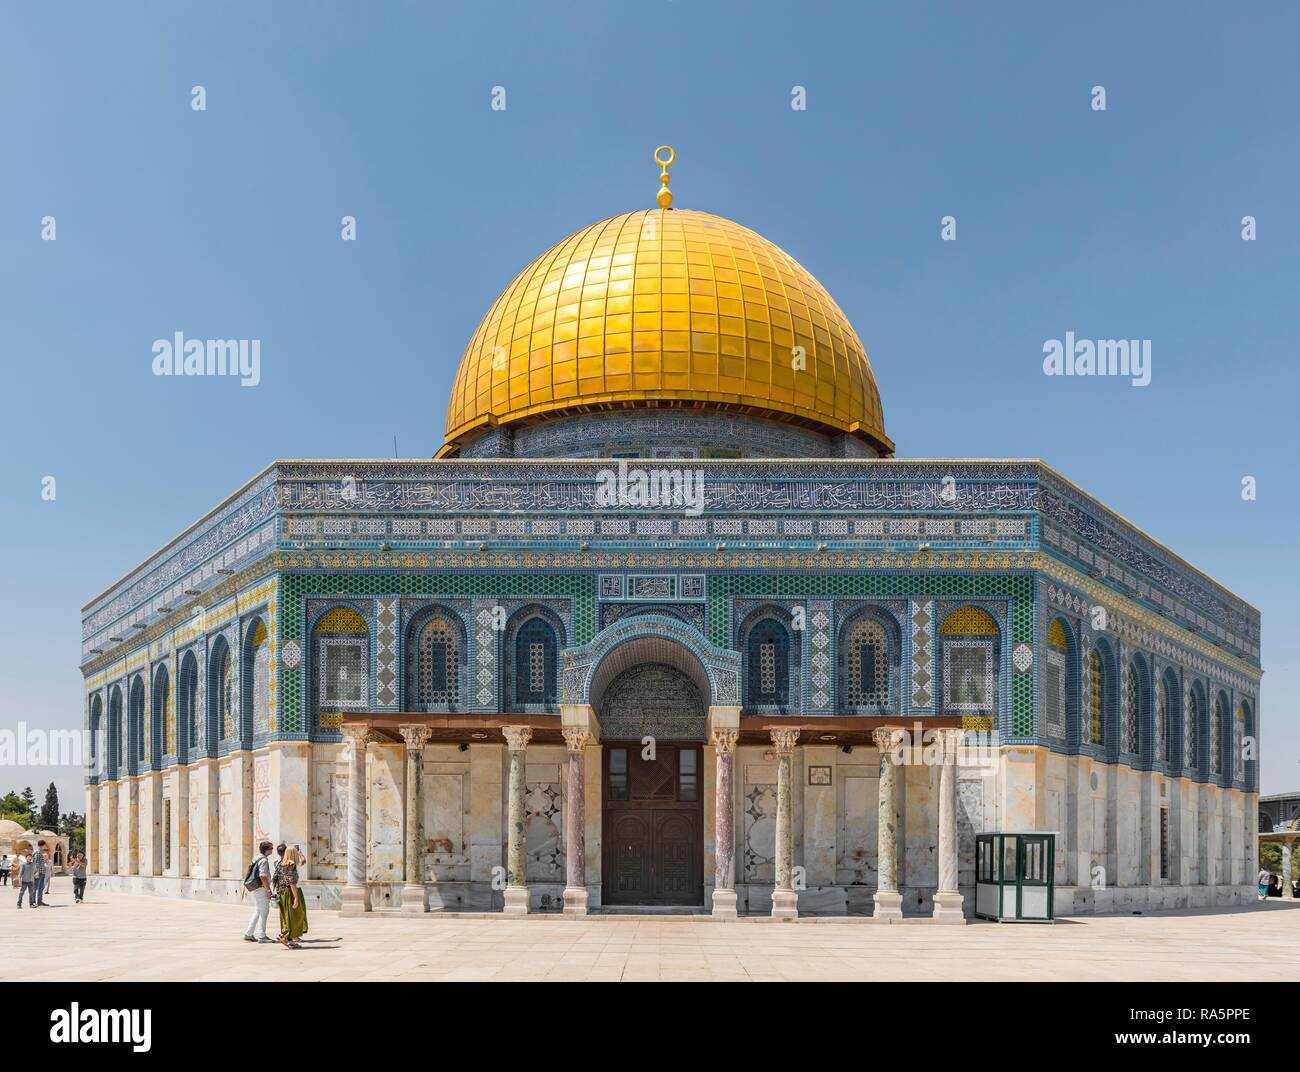 Decorated facade and golden dome, Dome of the Rock, also Qubbat As-sachra, Kipat Hasela, Temple Mount, Old Town, Jerusalem Stock Photo